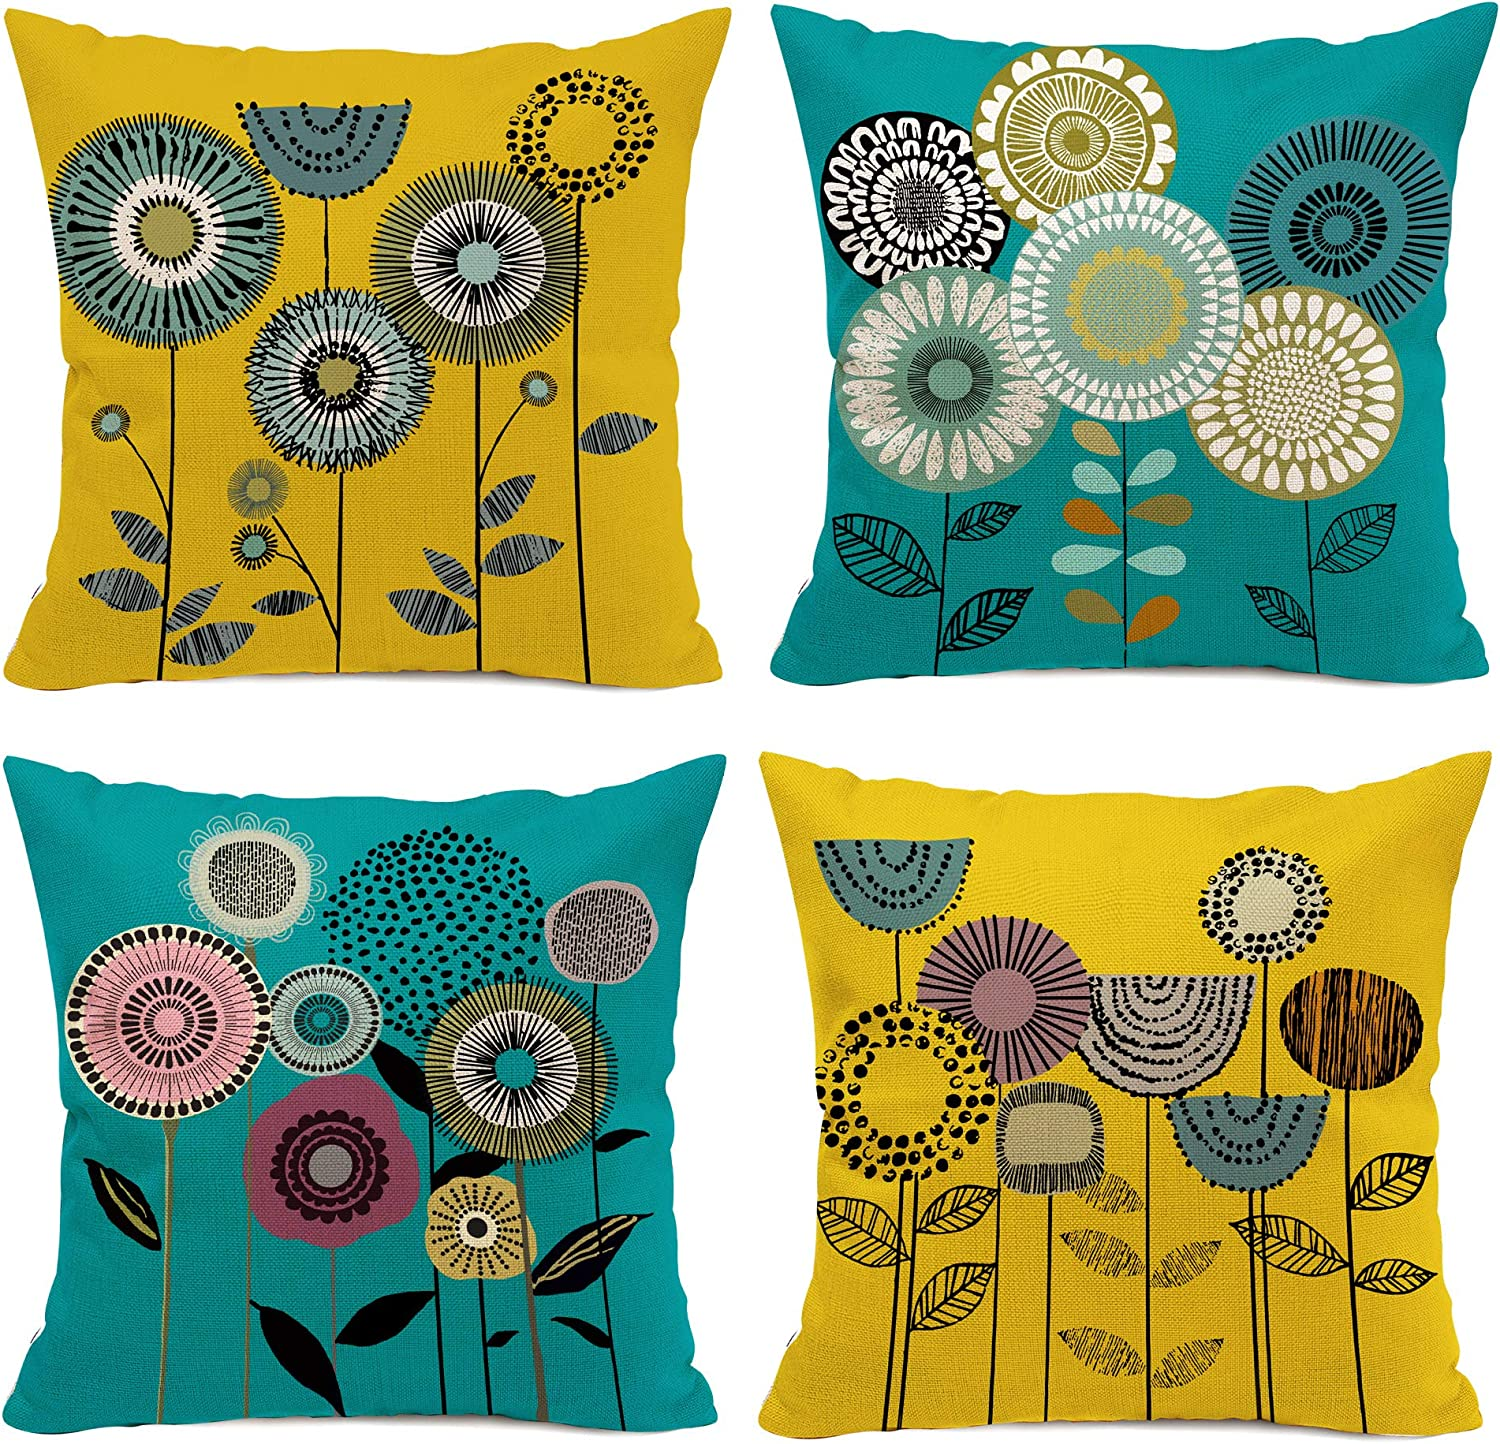 Amazon Com Hexagram Yellow And Turquoise Throw Pillow Covers Set Of 4 18x18 Cartoon Flowers Room Decor For Living Couch Sofa Cushion Bed Boho Floral Decorative Teal Home